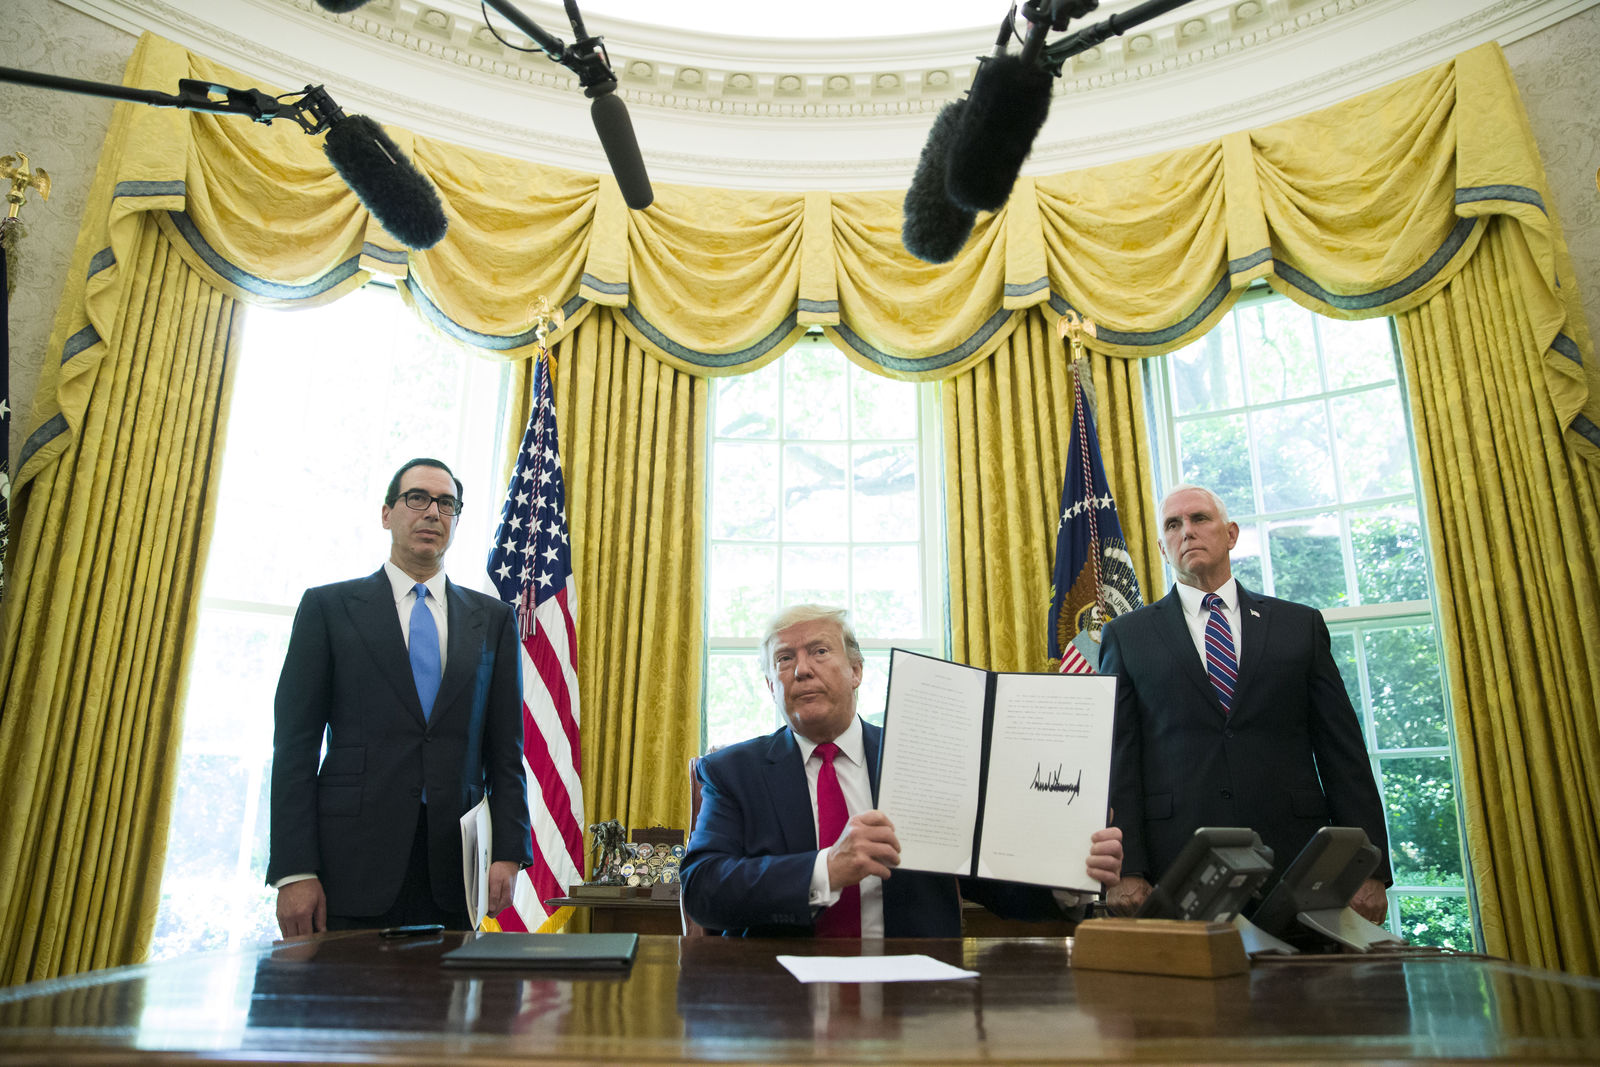 FILE - In this June 24, 2019, file photo, President Donald Trump holds up a signed executive order to increase sanctions on Iran, in the Oval Office of the White House in Washington, with Treasury Secretary Steven Mnuchin, left, and Vice President Mike Pence. Trump is now three for three. Each year of his presidency, he has issued more executive orders than did former President Barack Obama during the same time-span. (AP Photo/Alex Brandon, File)